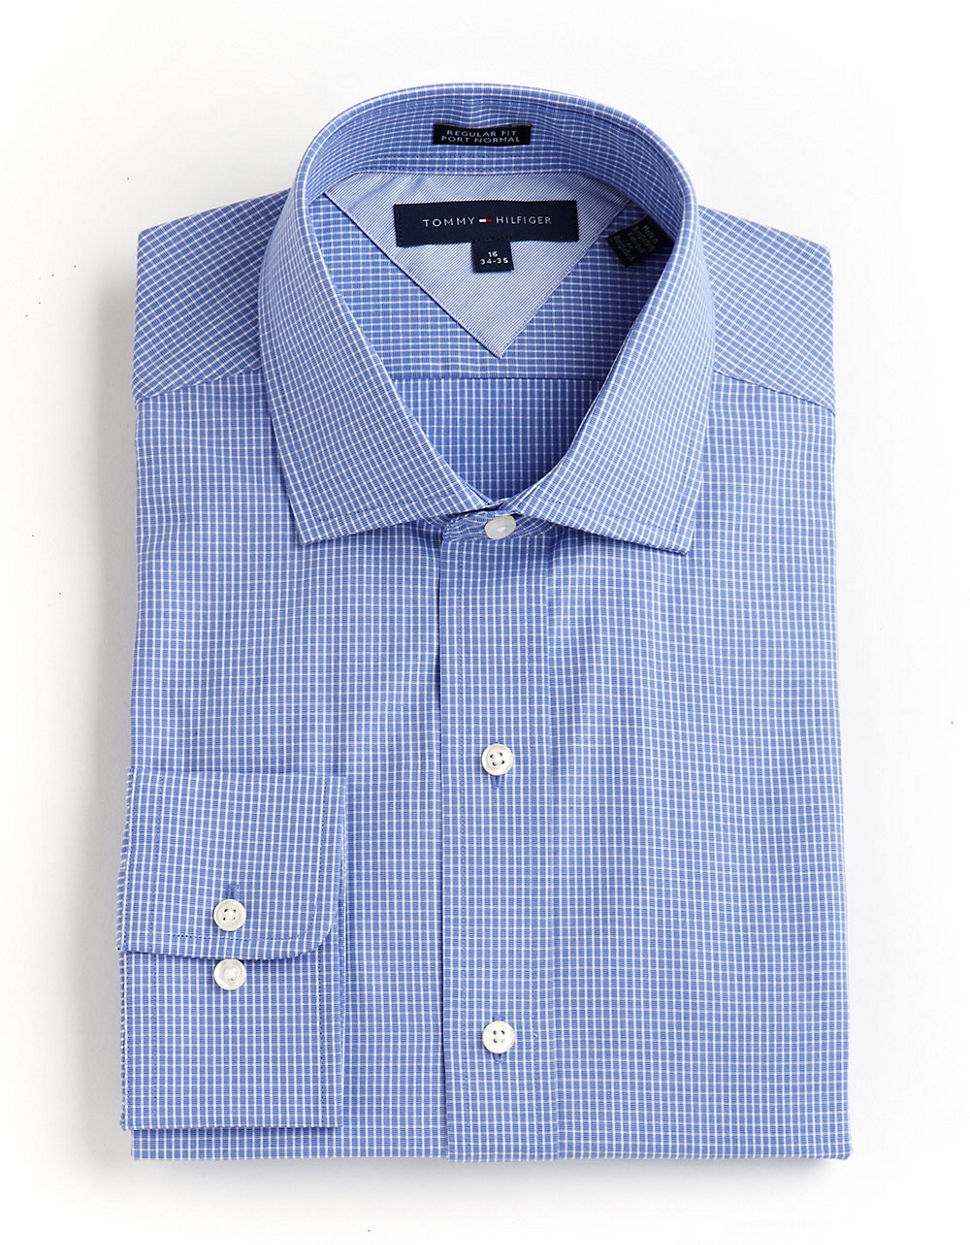 Tommy hilfiger Tommy Hilfiger Ls Regular Fit Dress Shirt blue 15  32/32